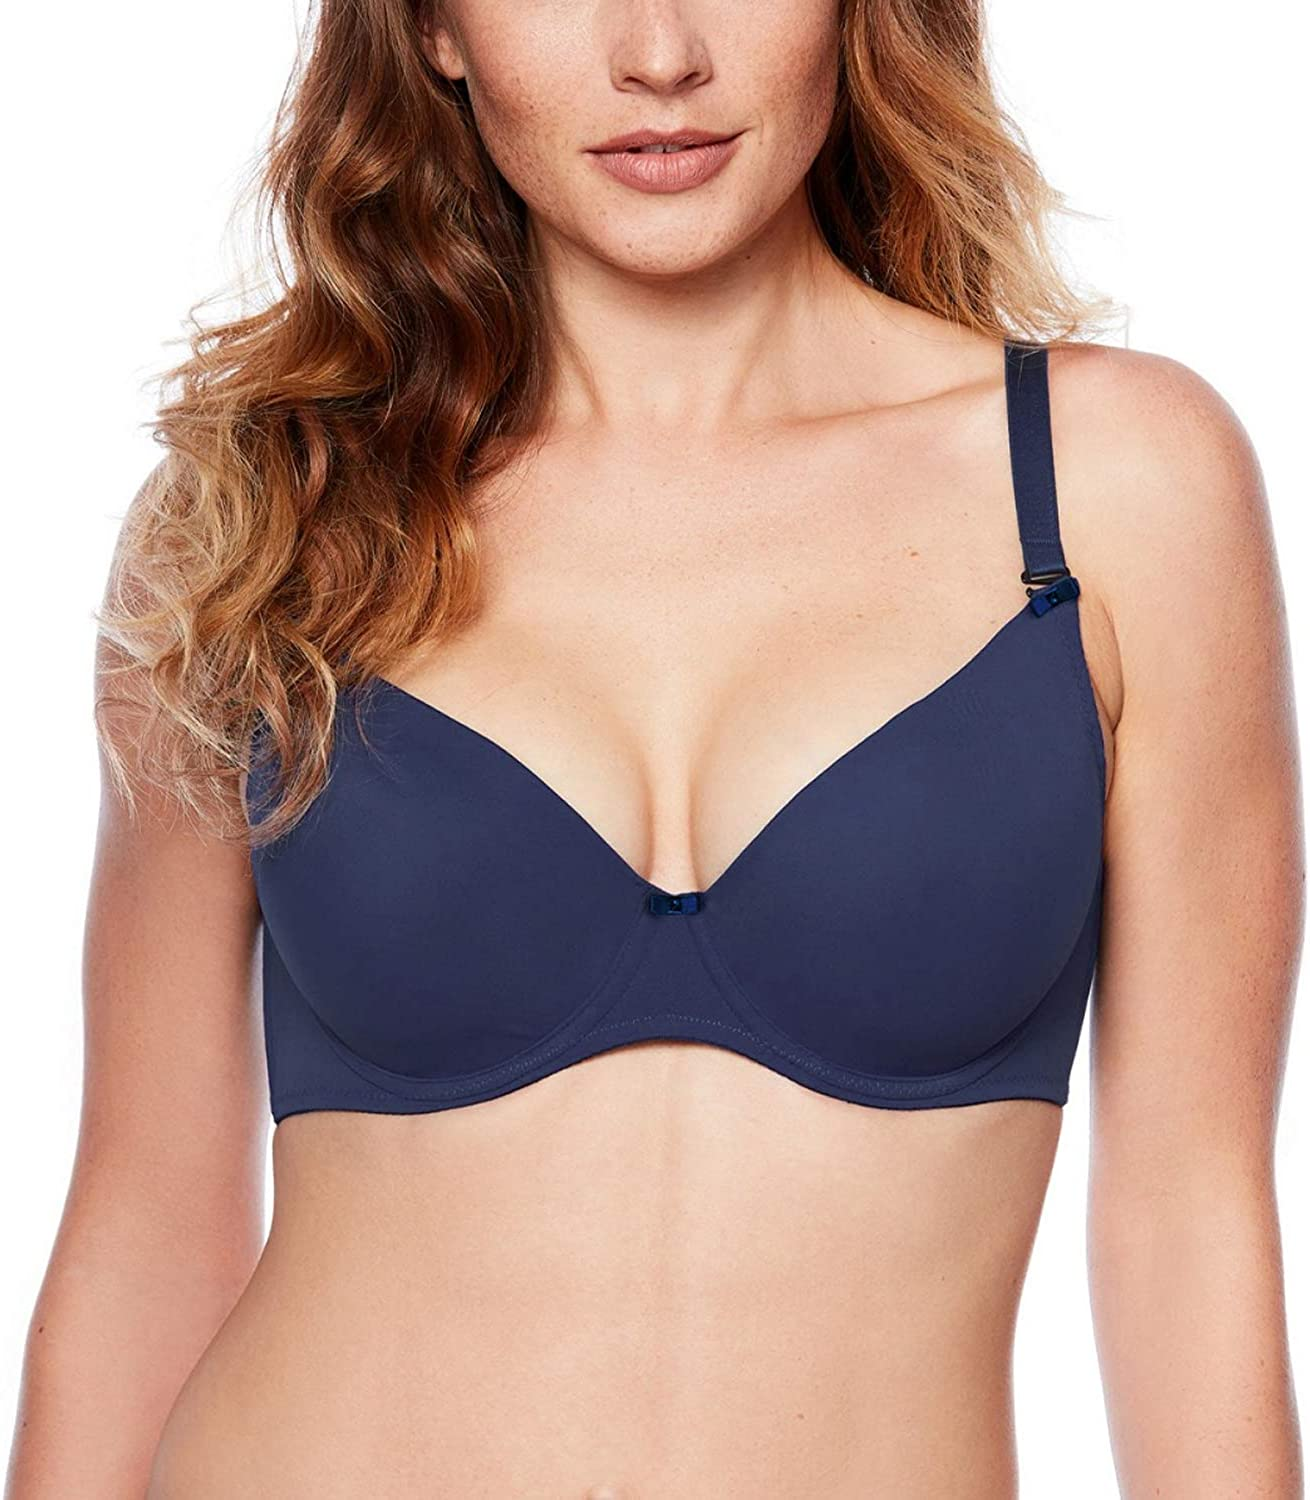 EU Gaia 639 Jean Underwired Smooth Push-Up Bra Removable Adjustable Straps